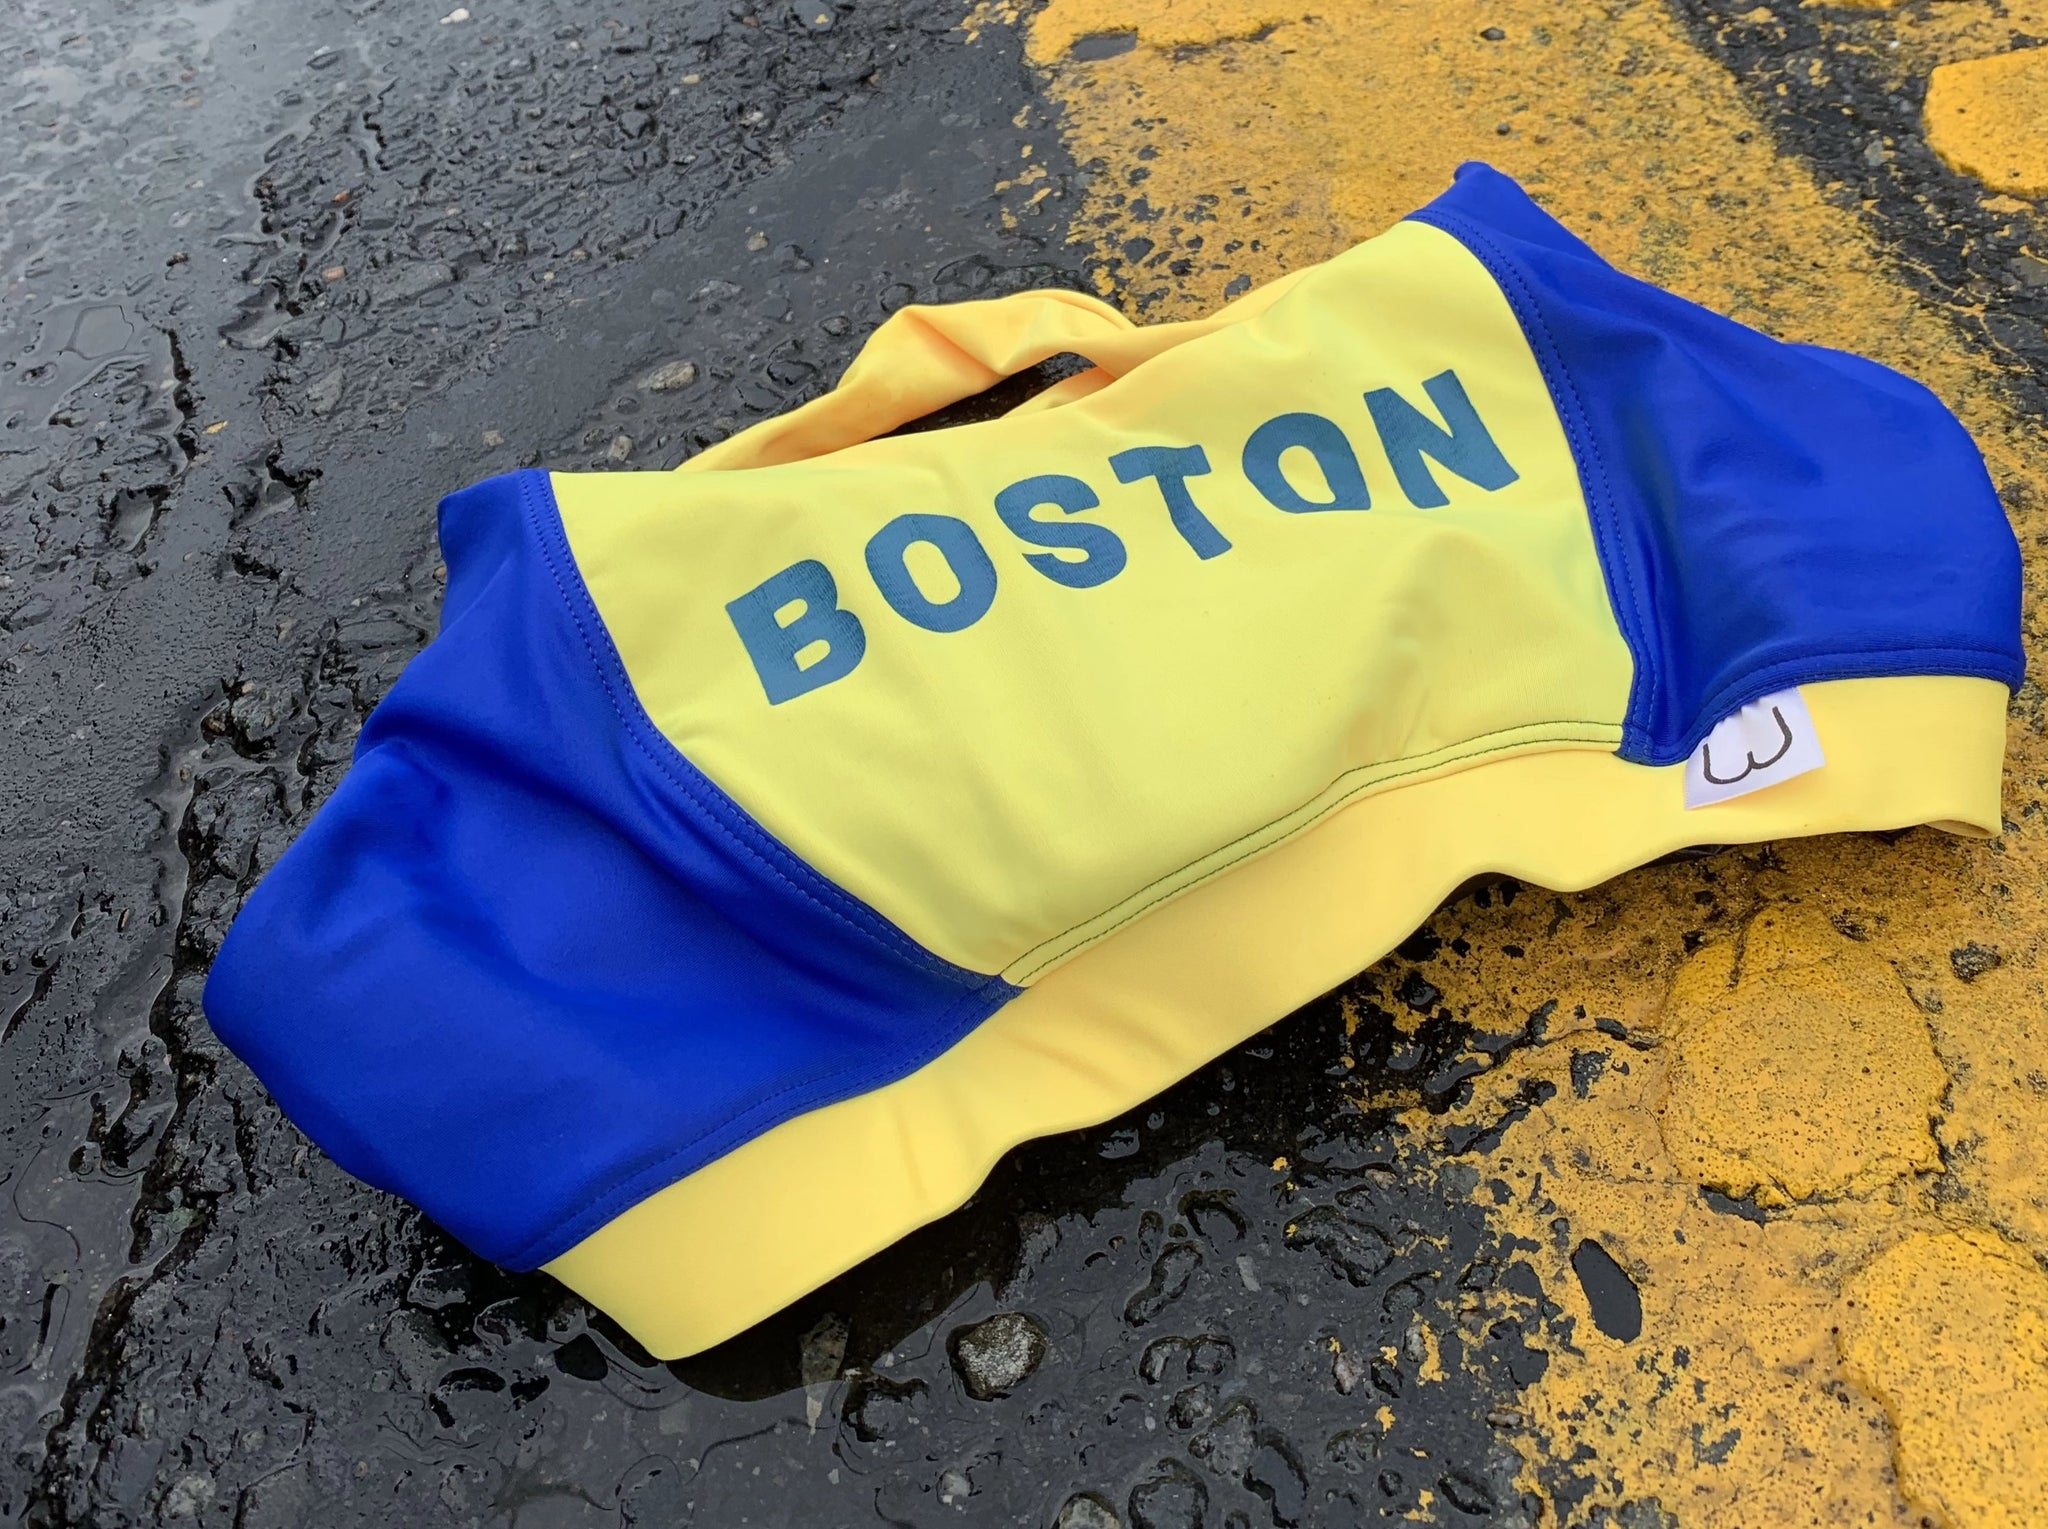 Boston Yellow -